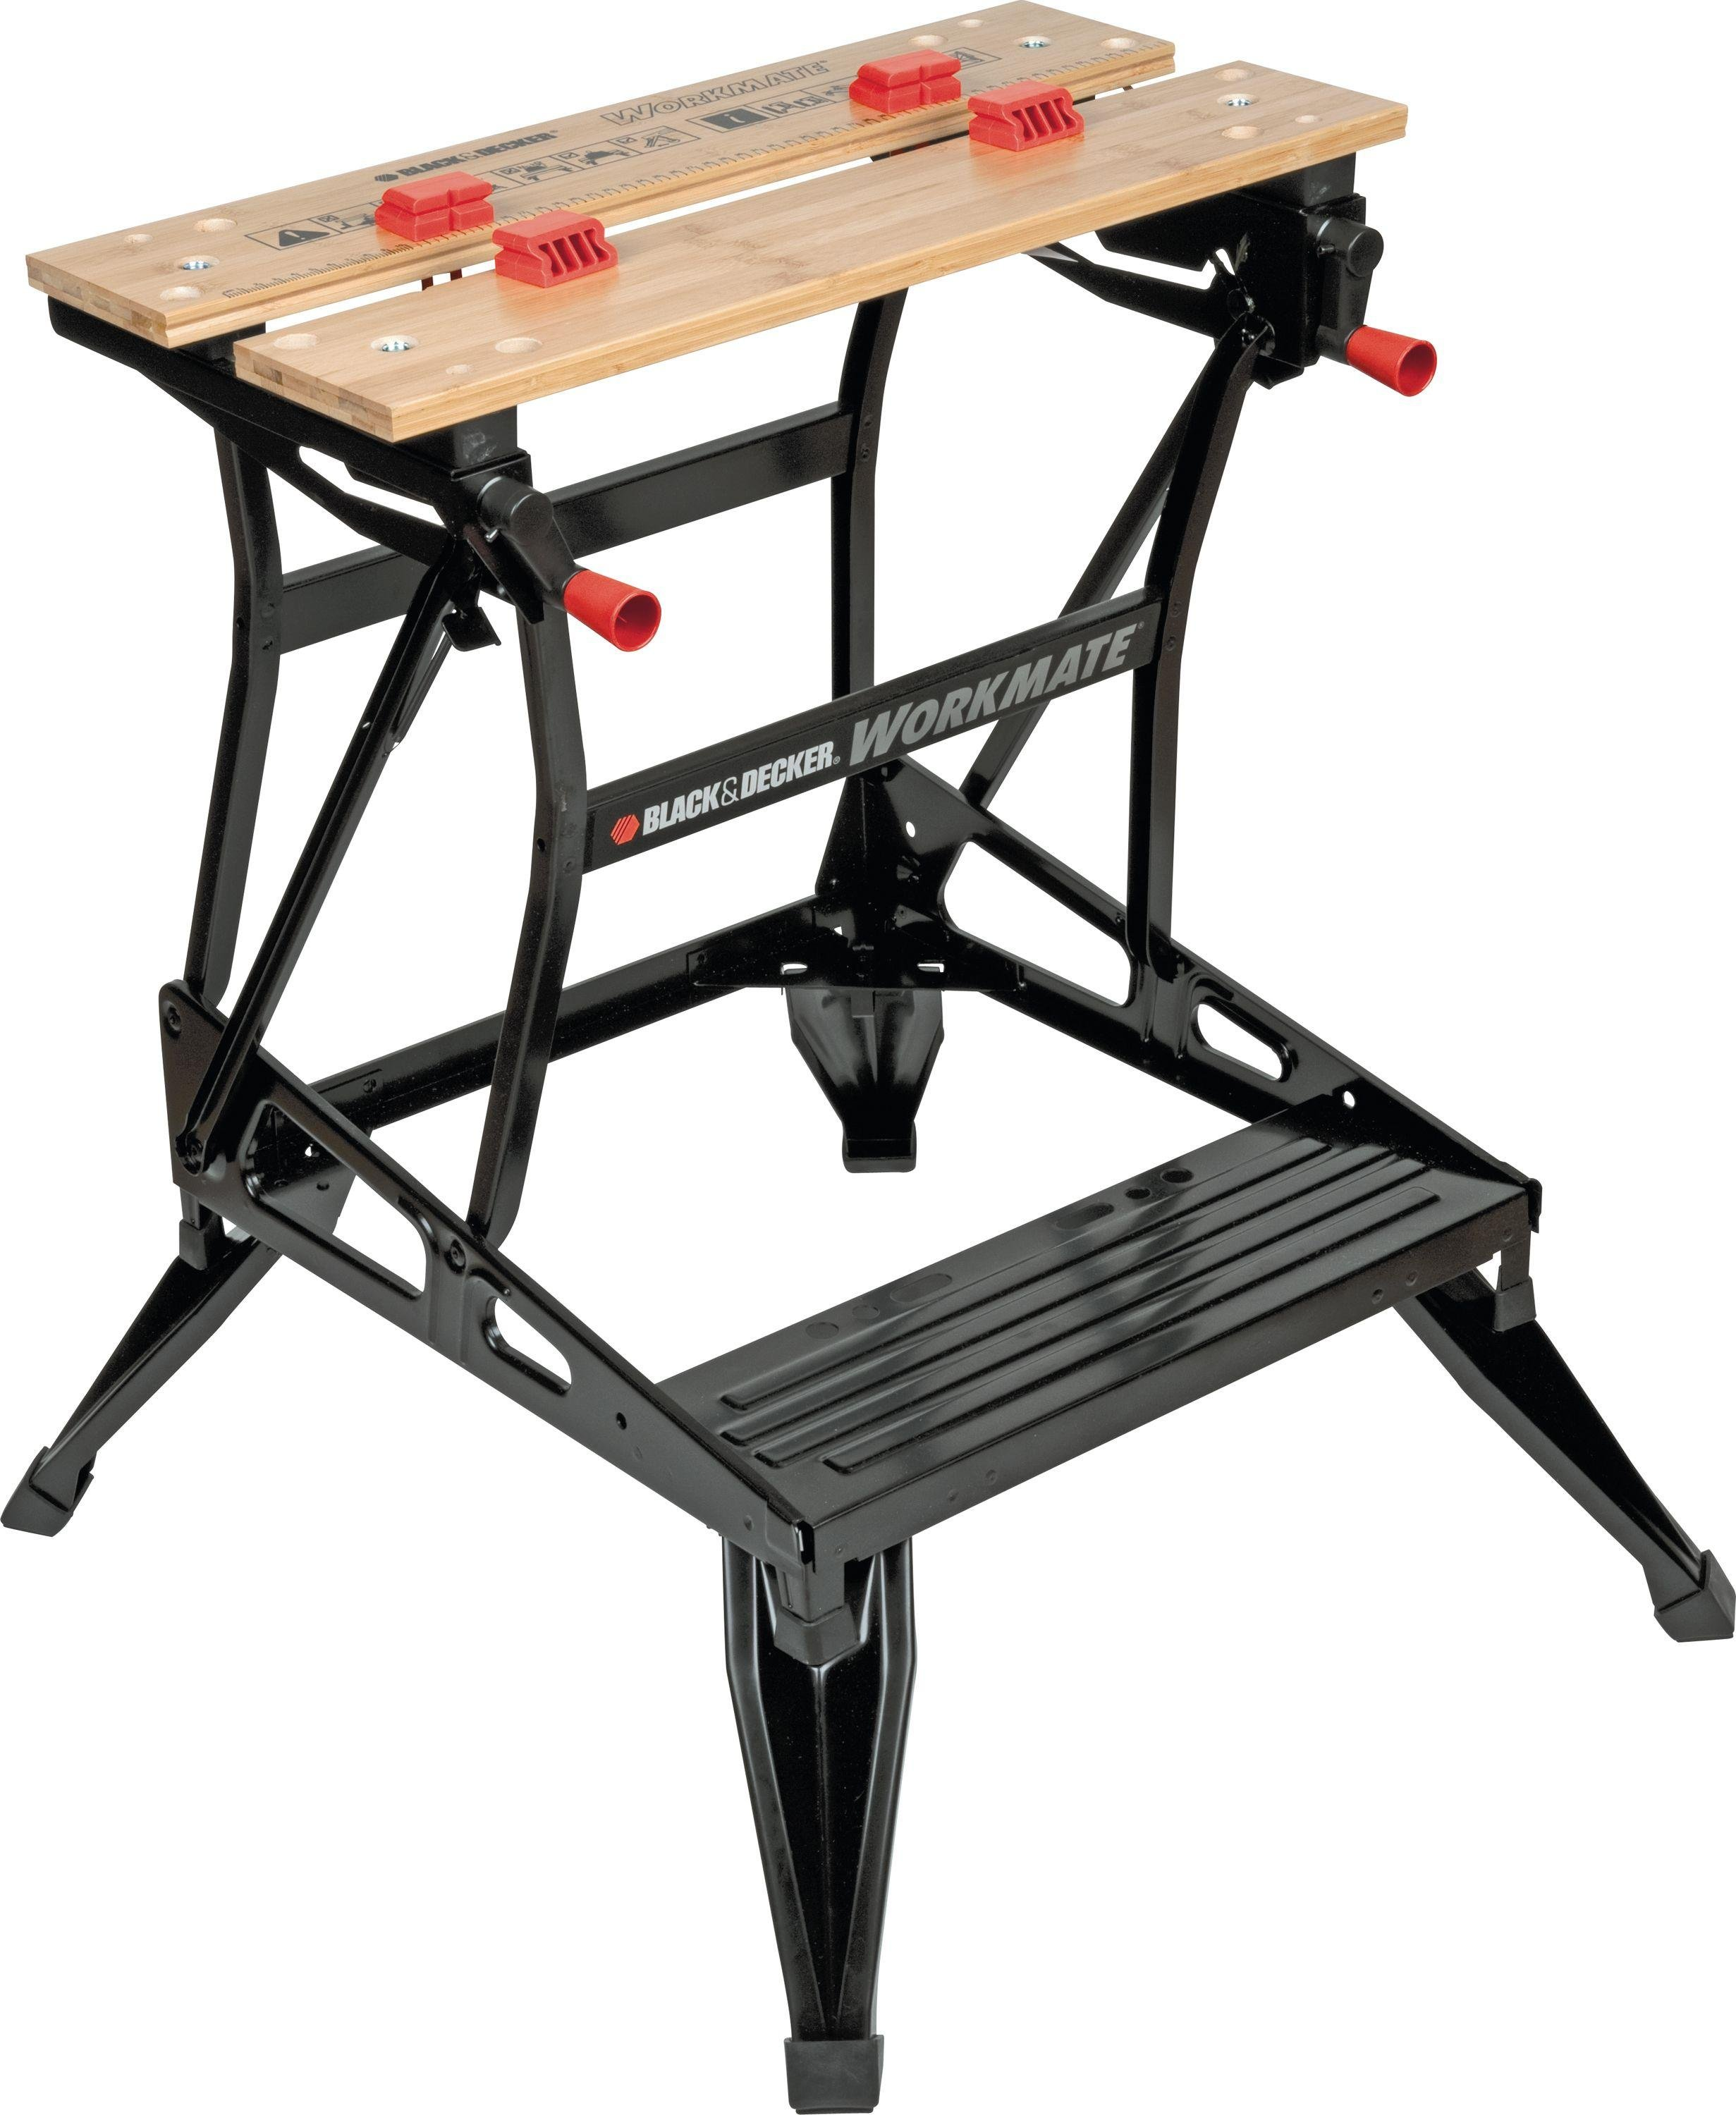 Image of Black and Decker - Workmate Dual Height - Work Bench